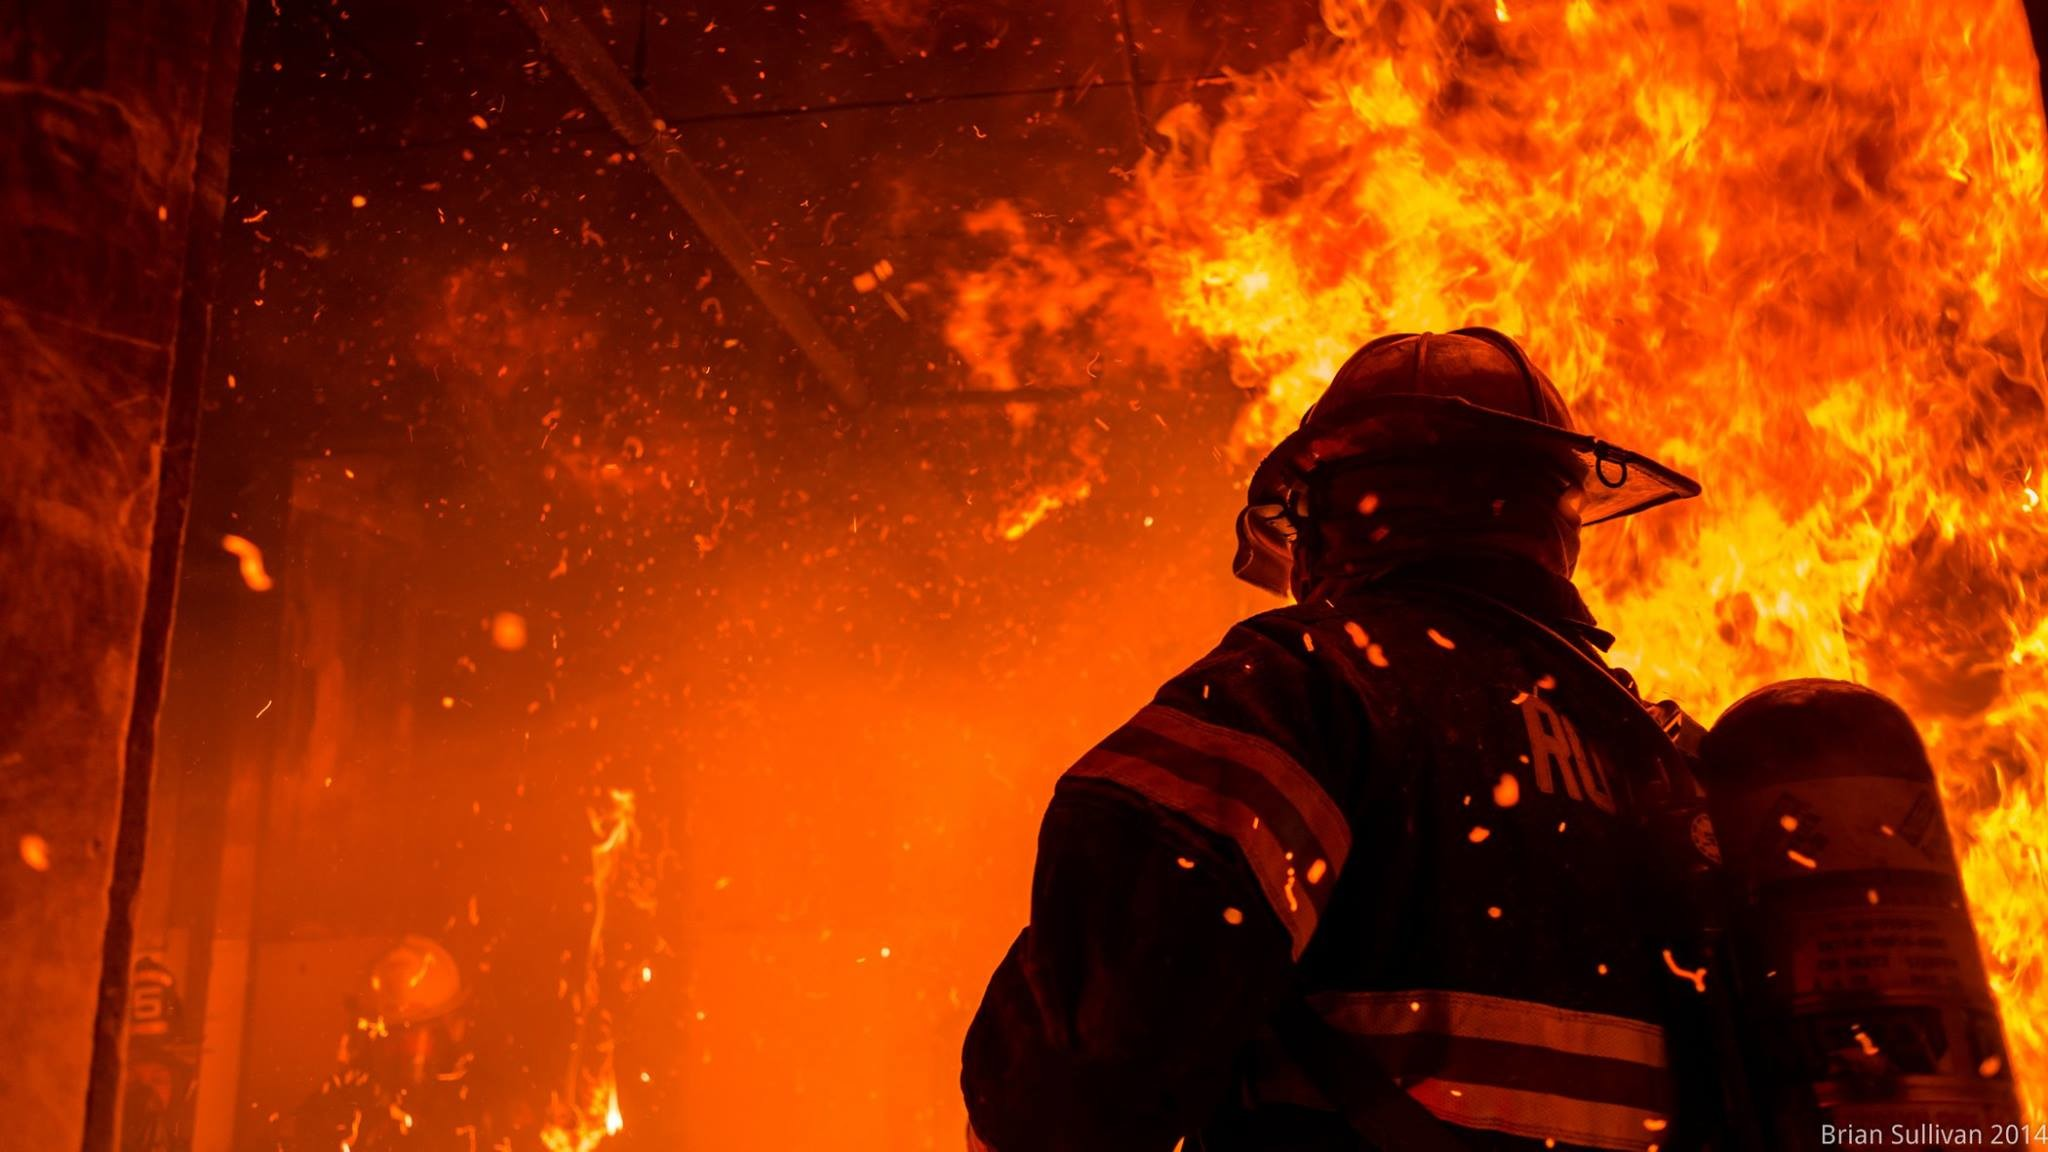 firefighter wallpaper for computer 45 images